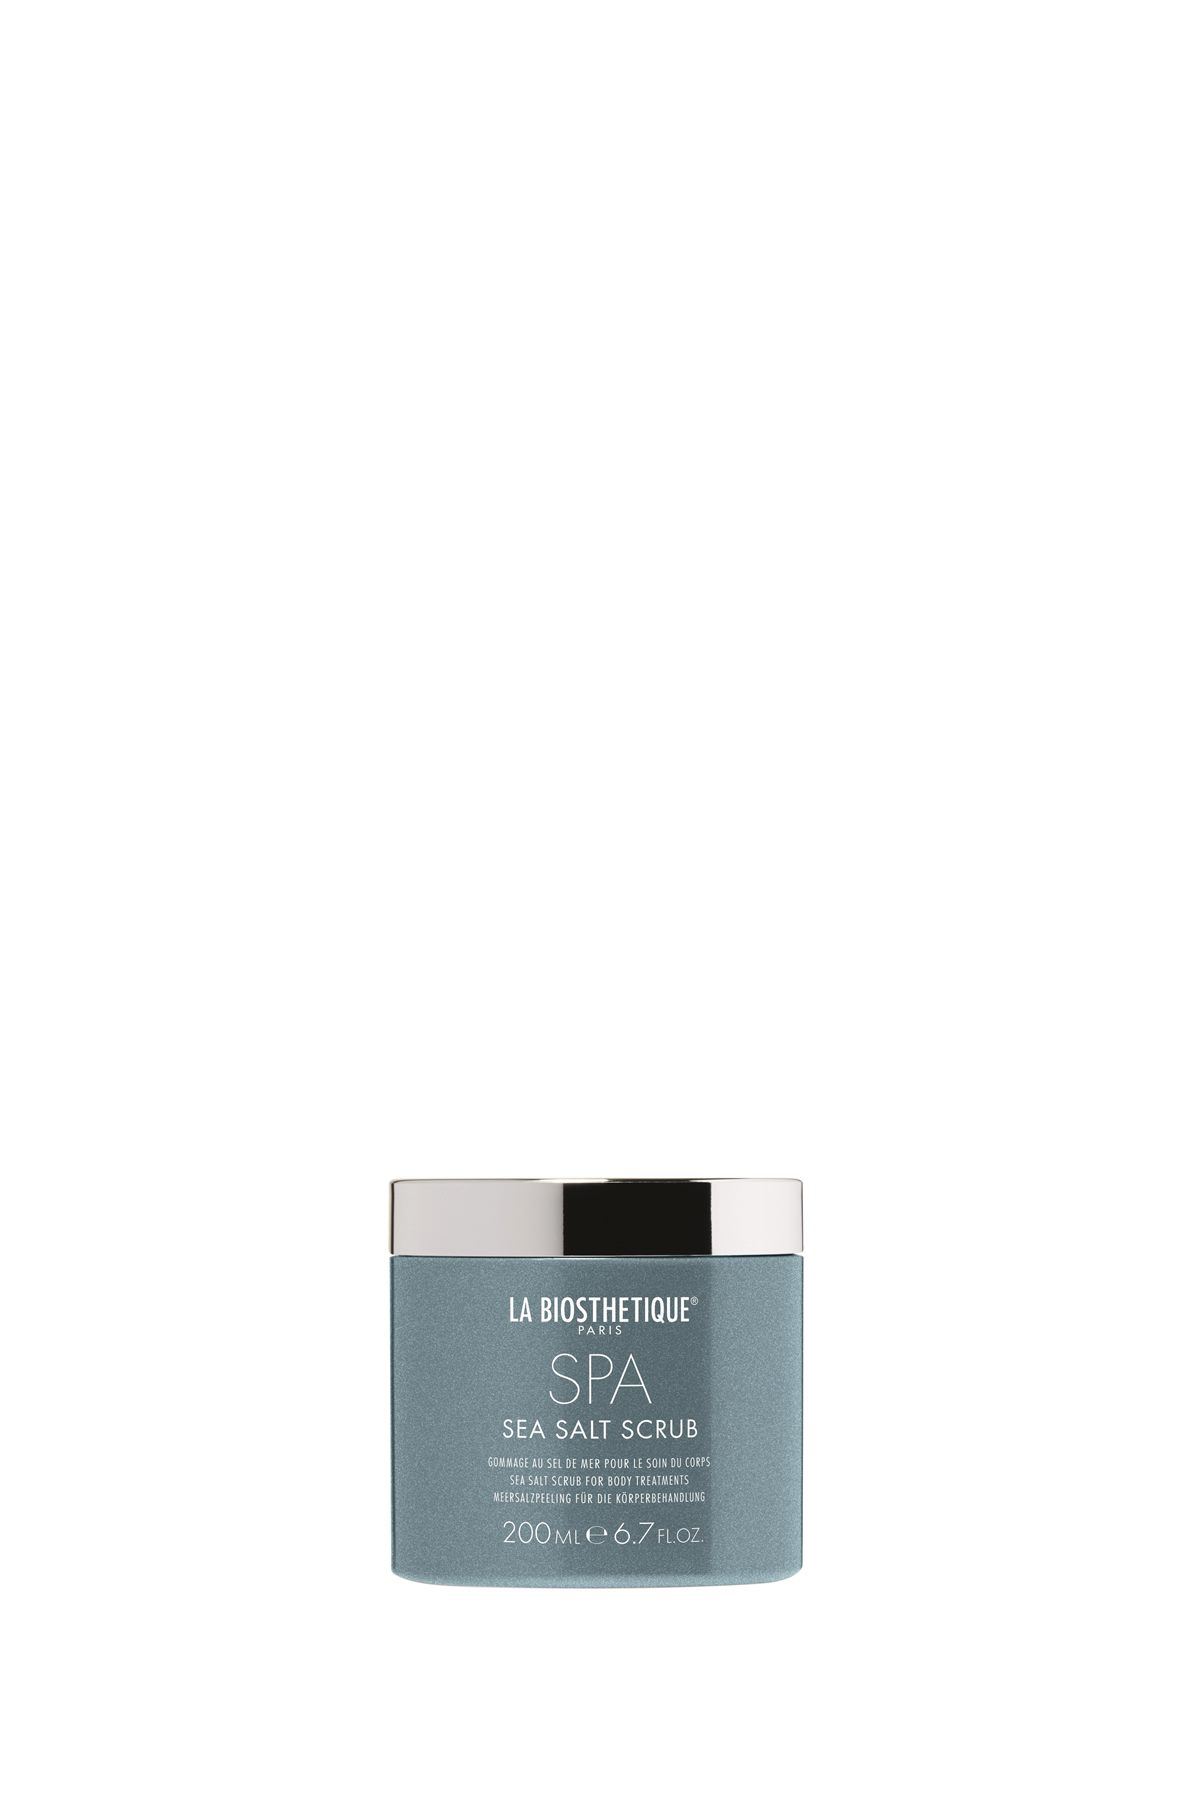 La Biosthetique_Spa Actif_Sea Salt Scrub_200ml_30,00 EUR